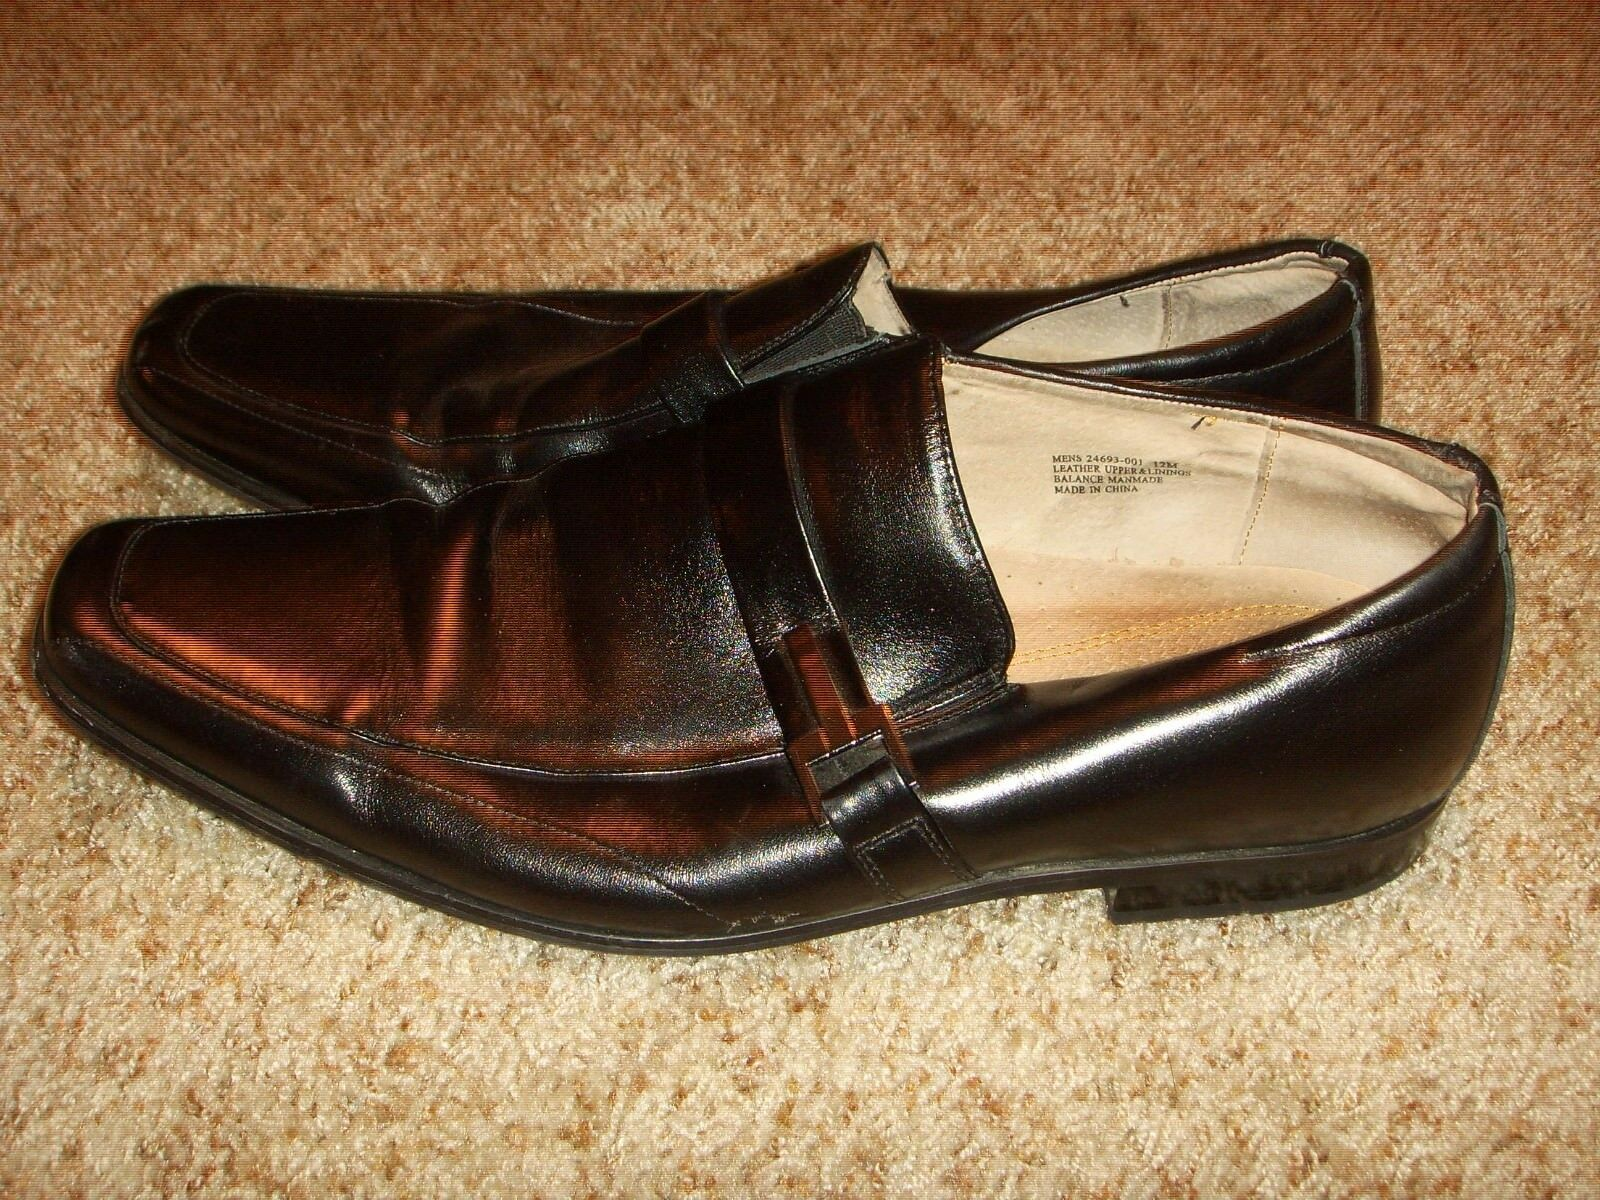 Stacy Adams 24693-001 Black Leather Slip On Loafer Shoes Mens Size 12M